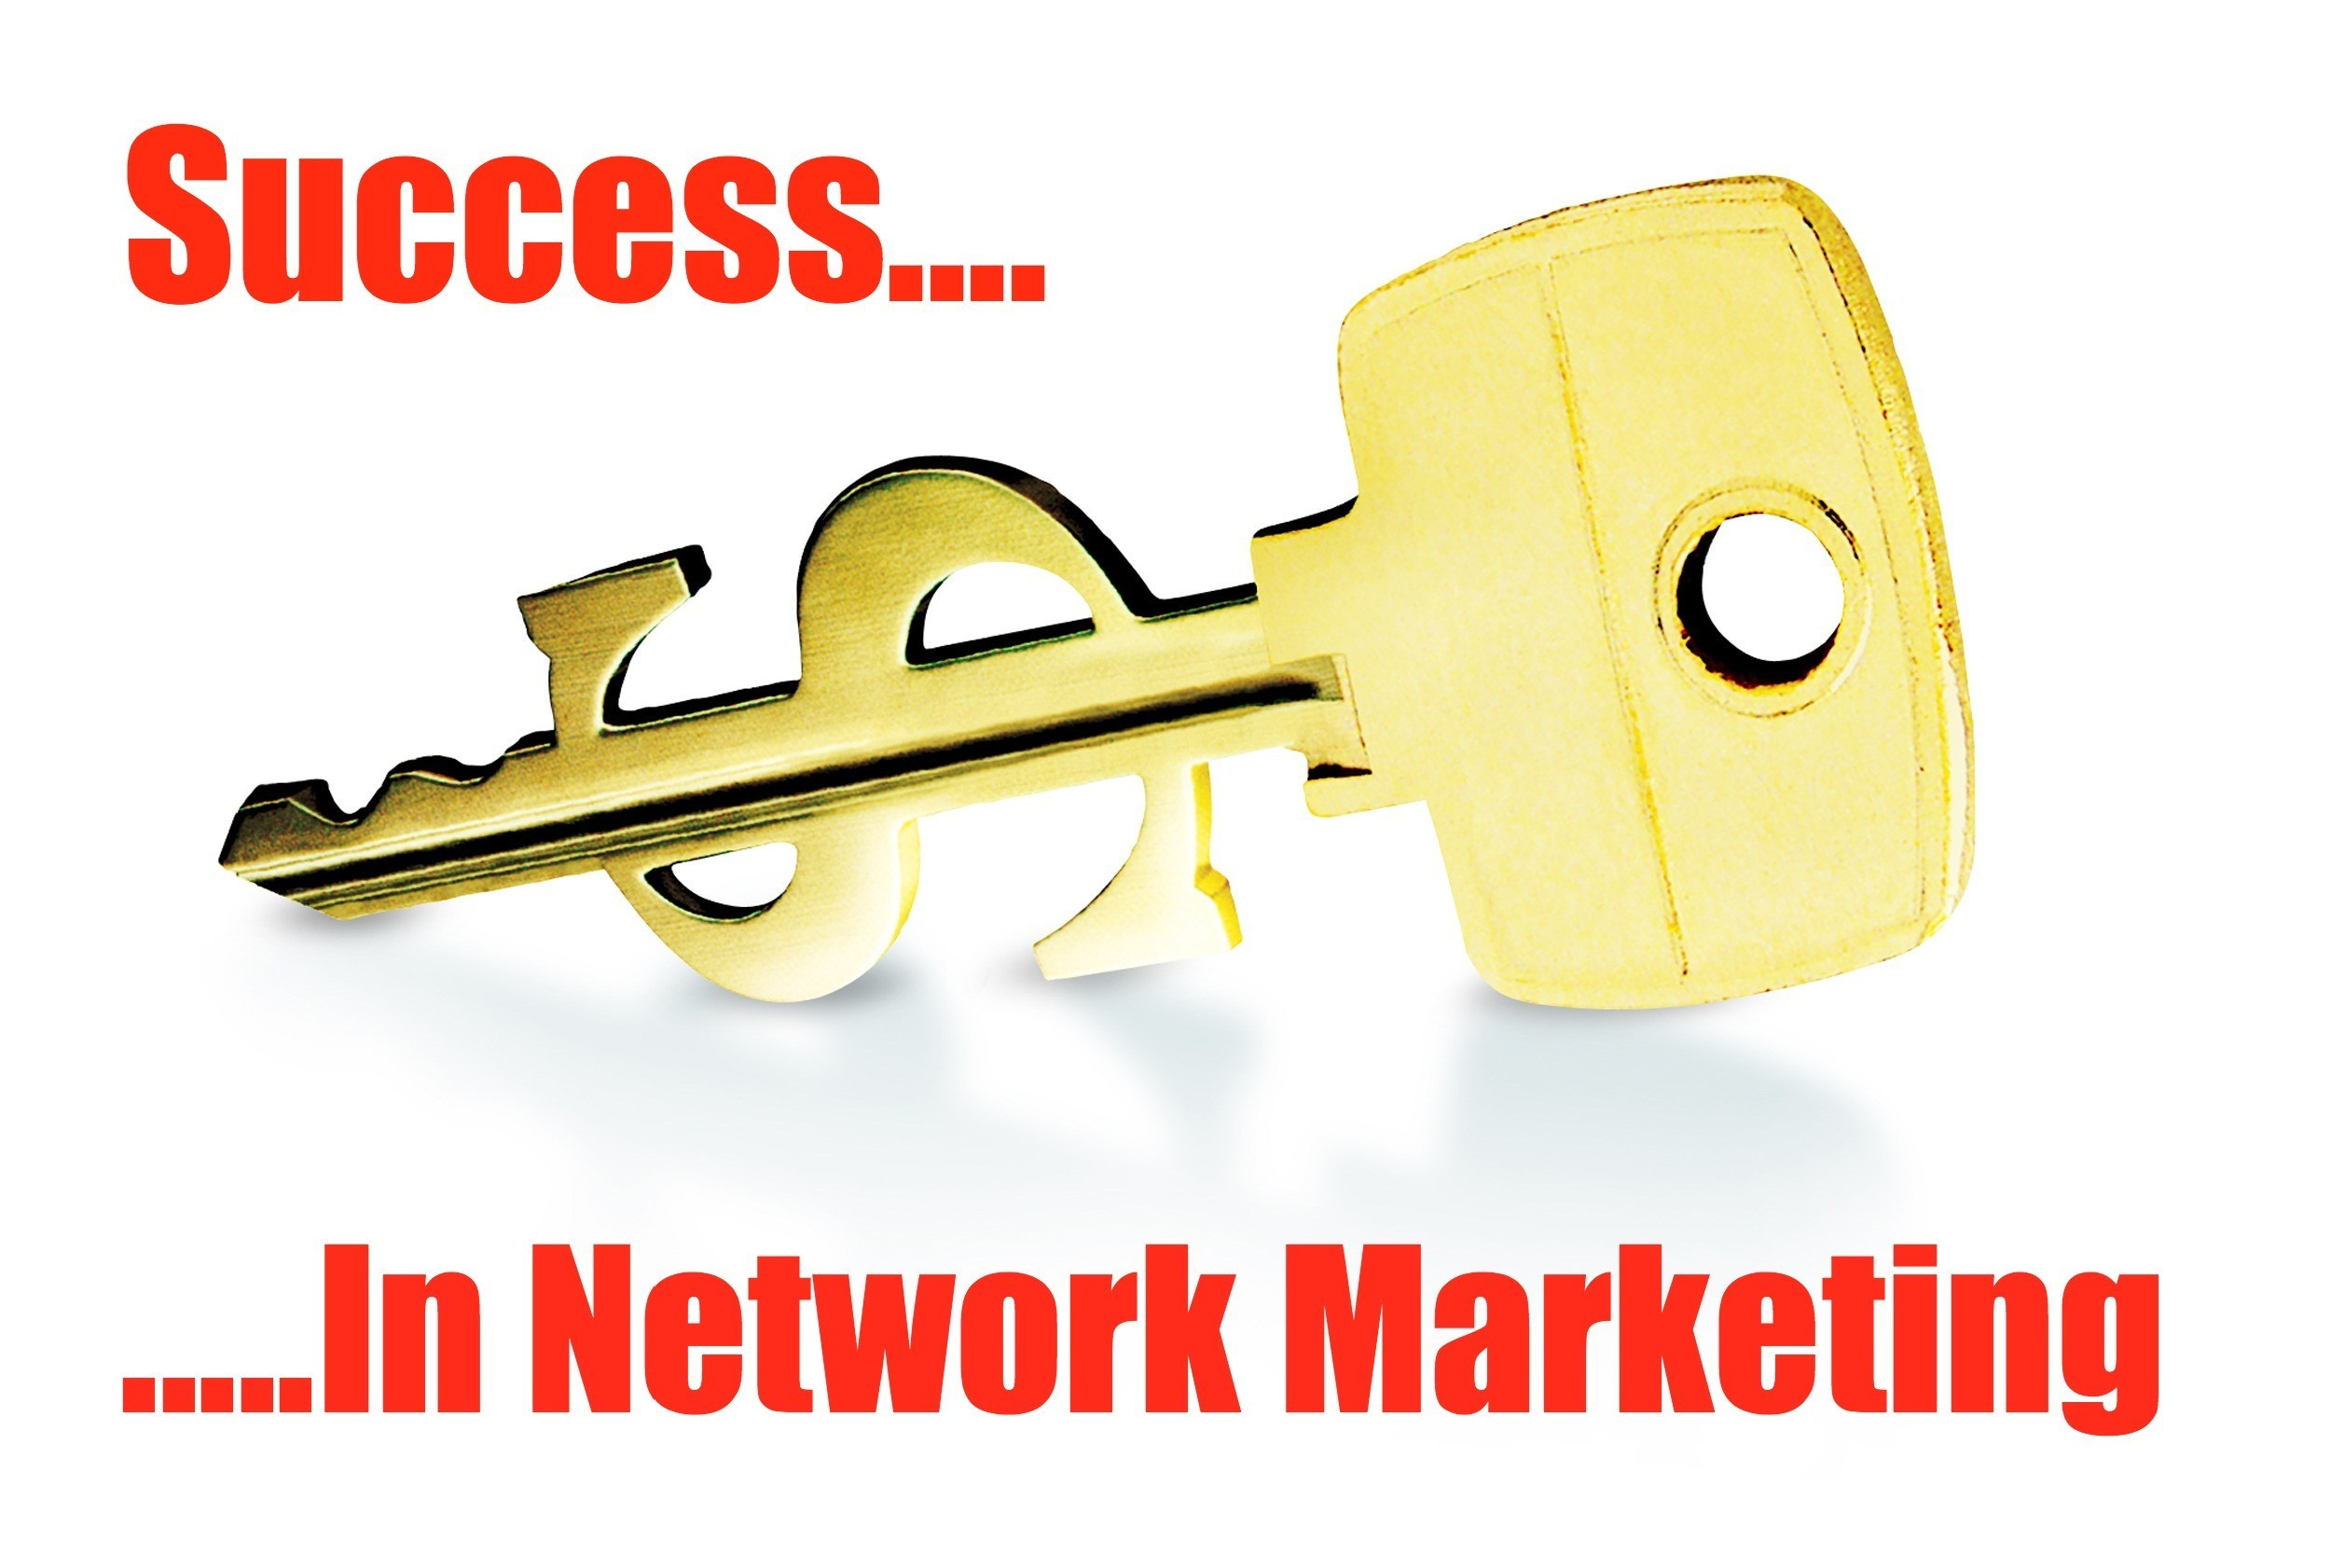 How To Achieve Success In Network Marketing